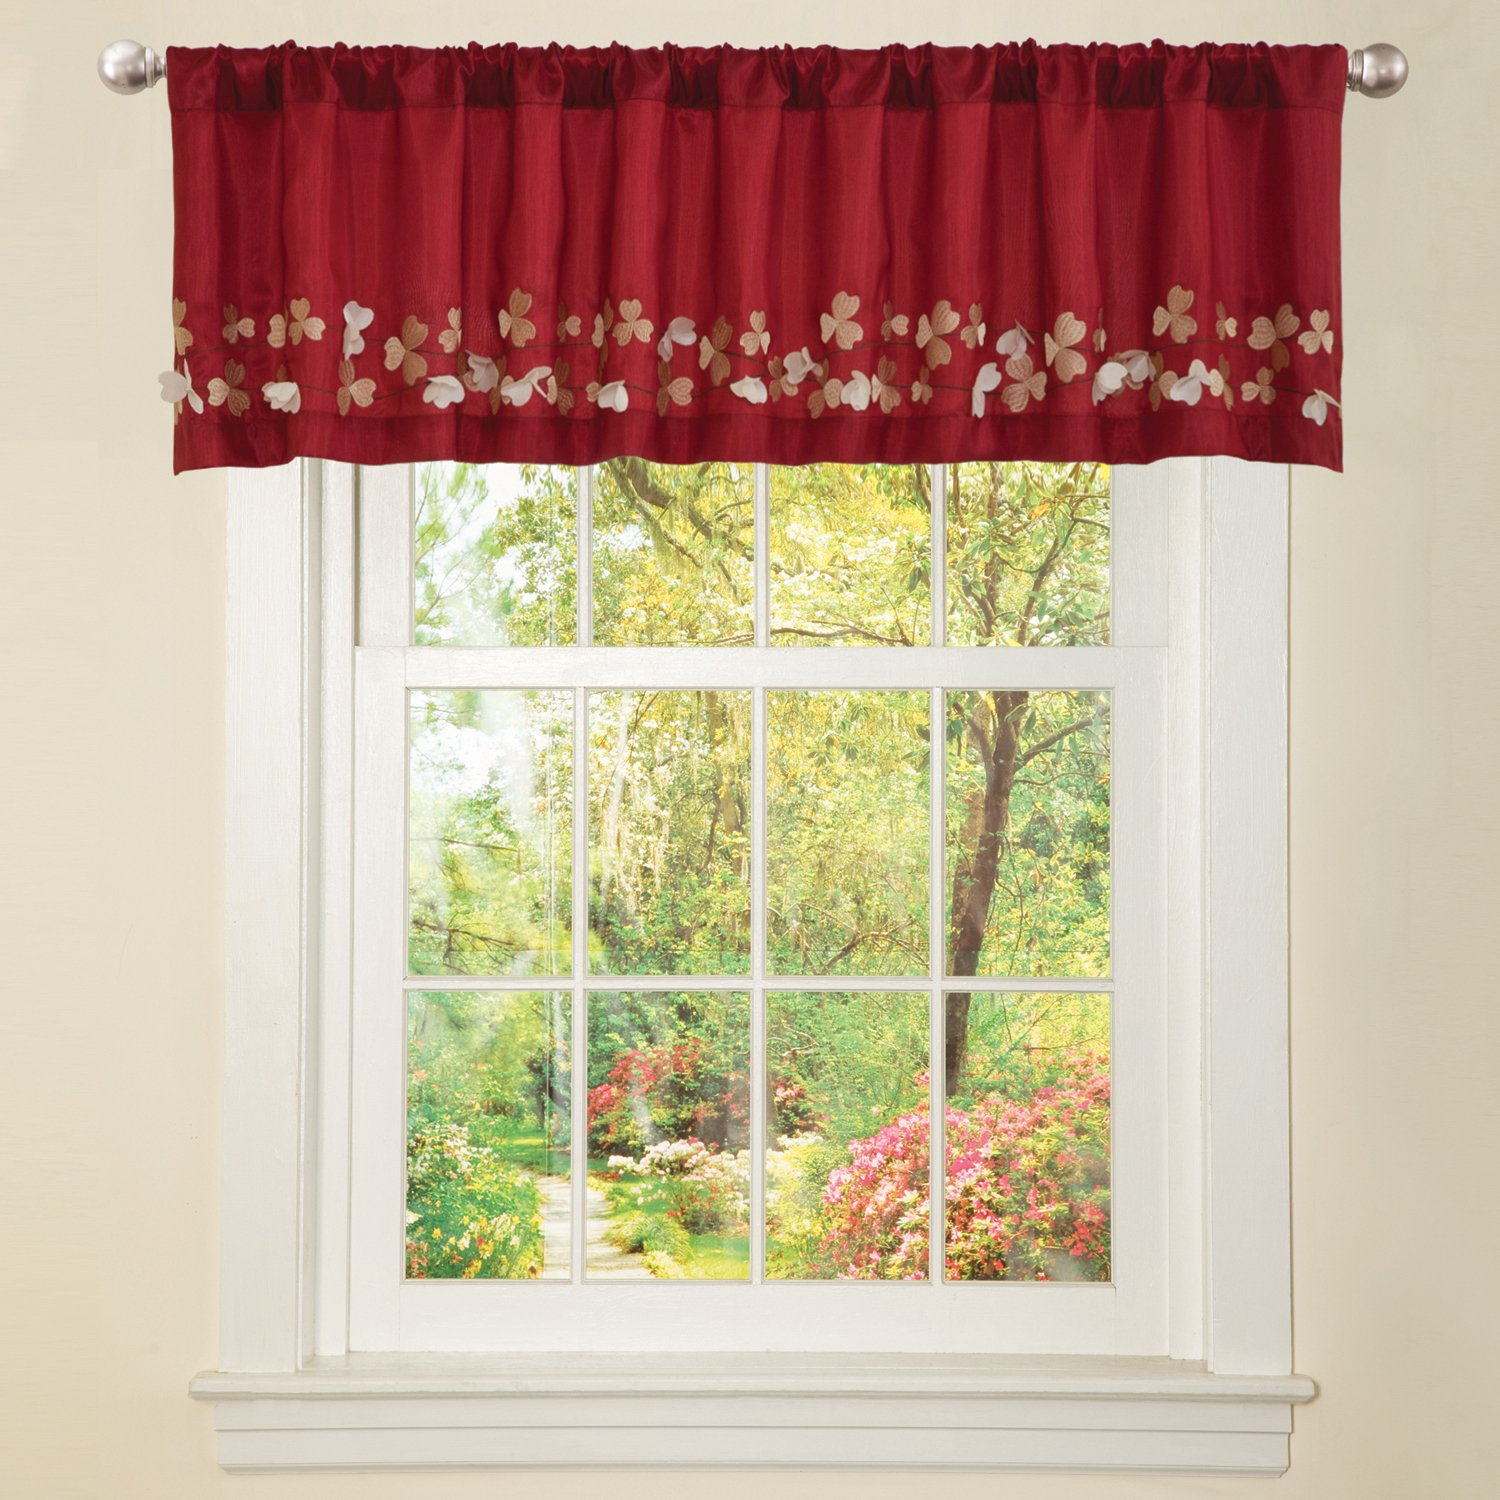 Triangle Home Fashions Lush Decor Flower Drop Valance Red Amazonca Kitchen